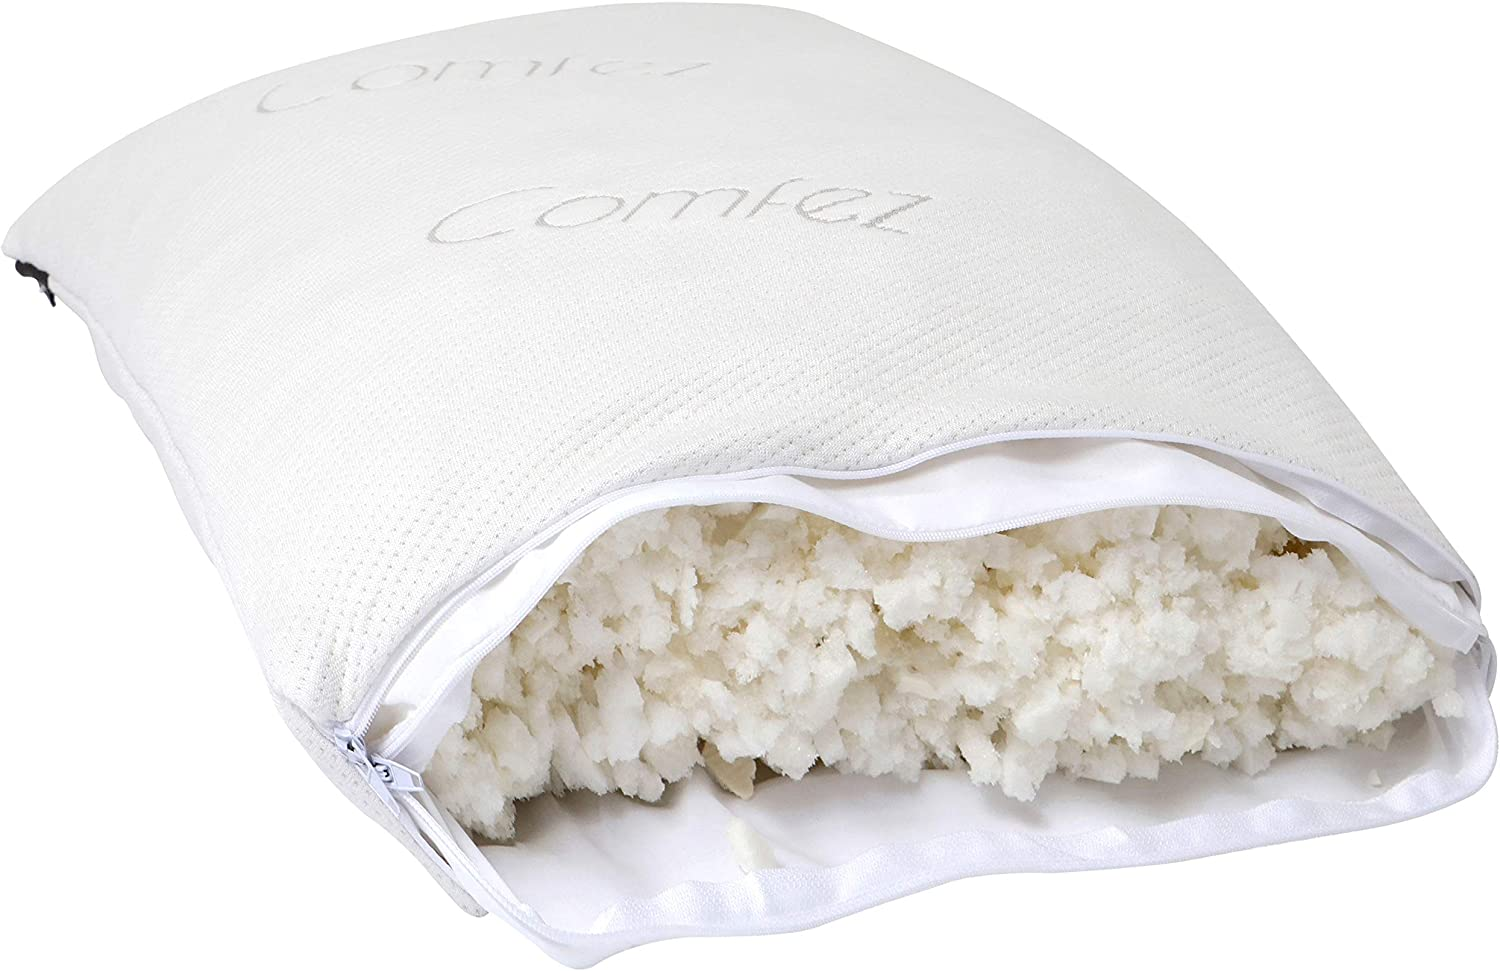 Comfez Shredded Memory Foam Pillow | Removable Washable Cooling Bamboo Cover | Adjustable Thickness for Back, Side & Stomach Sleepers | Pain Relief (Standard 20x36)